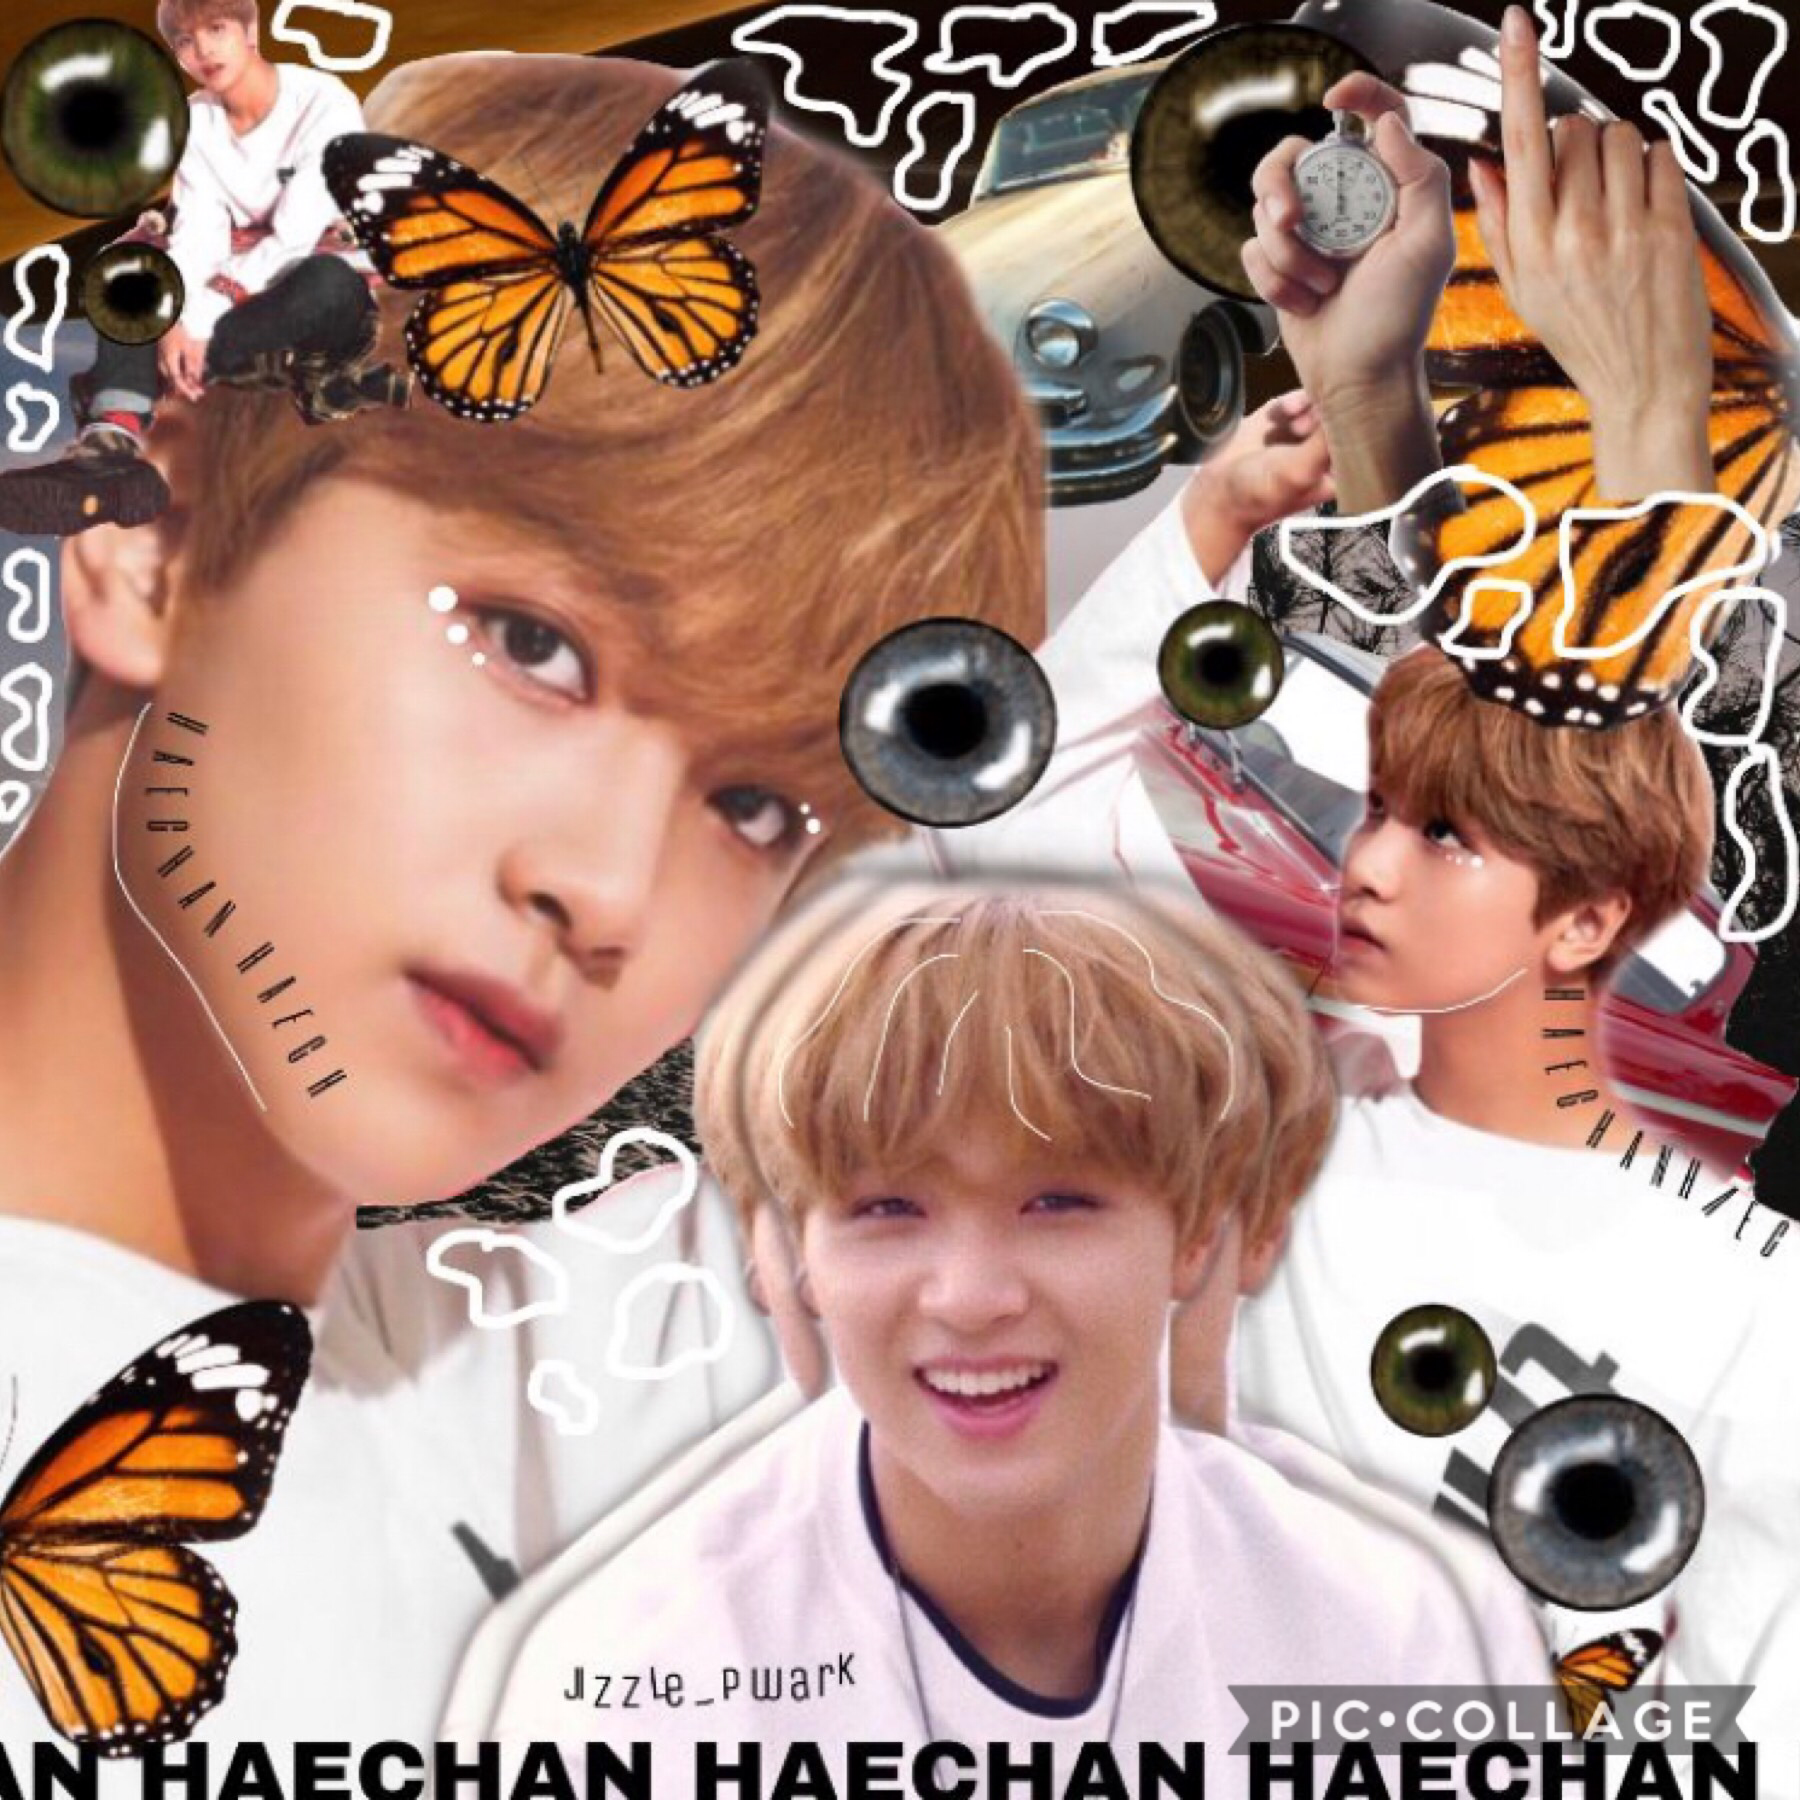 :D)) TAP INSPIRED *stolen* BY: tHe aMaziNG @jUsT-peachy!!!!!  ^^no I'm jk 😂 I didn't steal from her (ILY KATIE PLZ DONT KILL ME)  I wanted to make an edit for her/based on her edits because THEY ARE SOOOO GORGEOUS AND— 😤😤😤 ofc it's not even close to how a